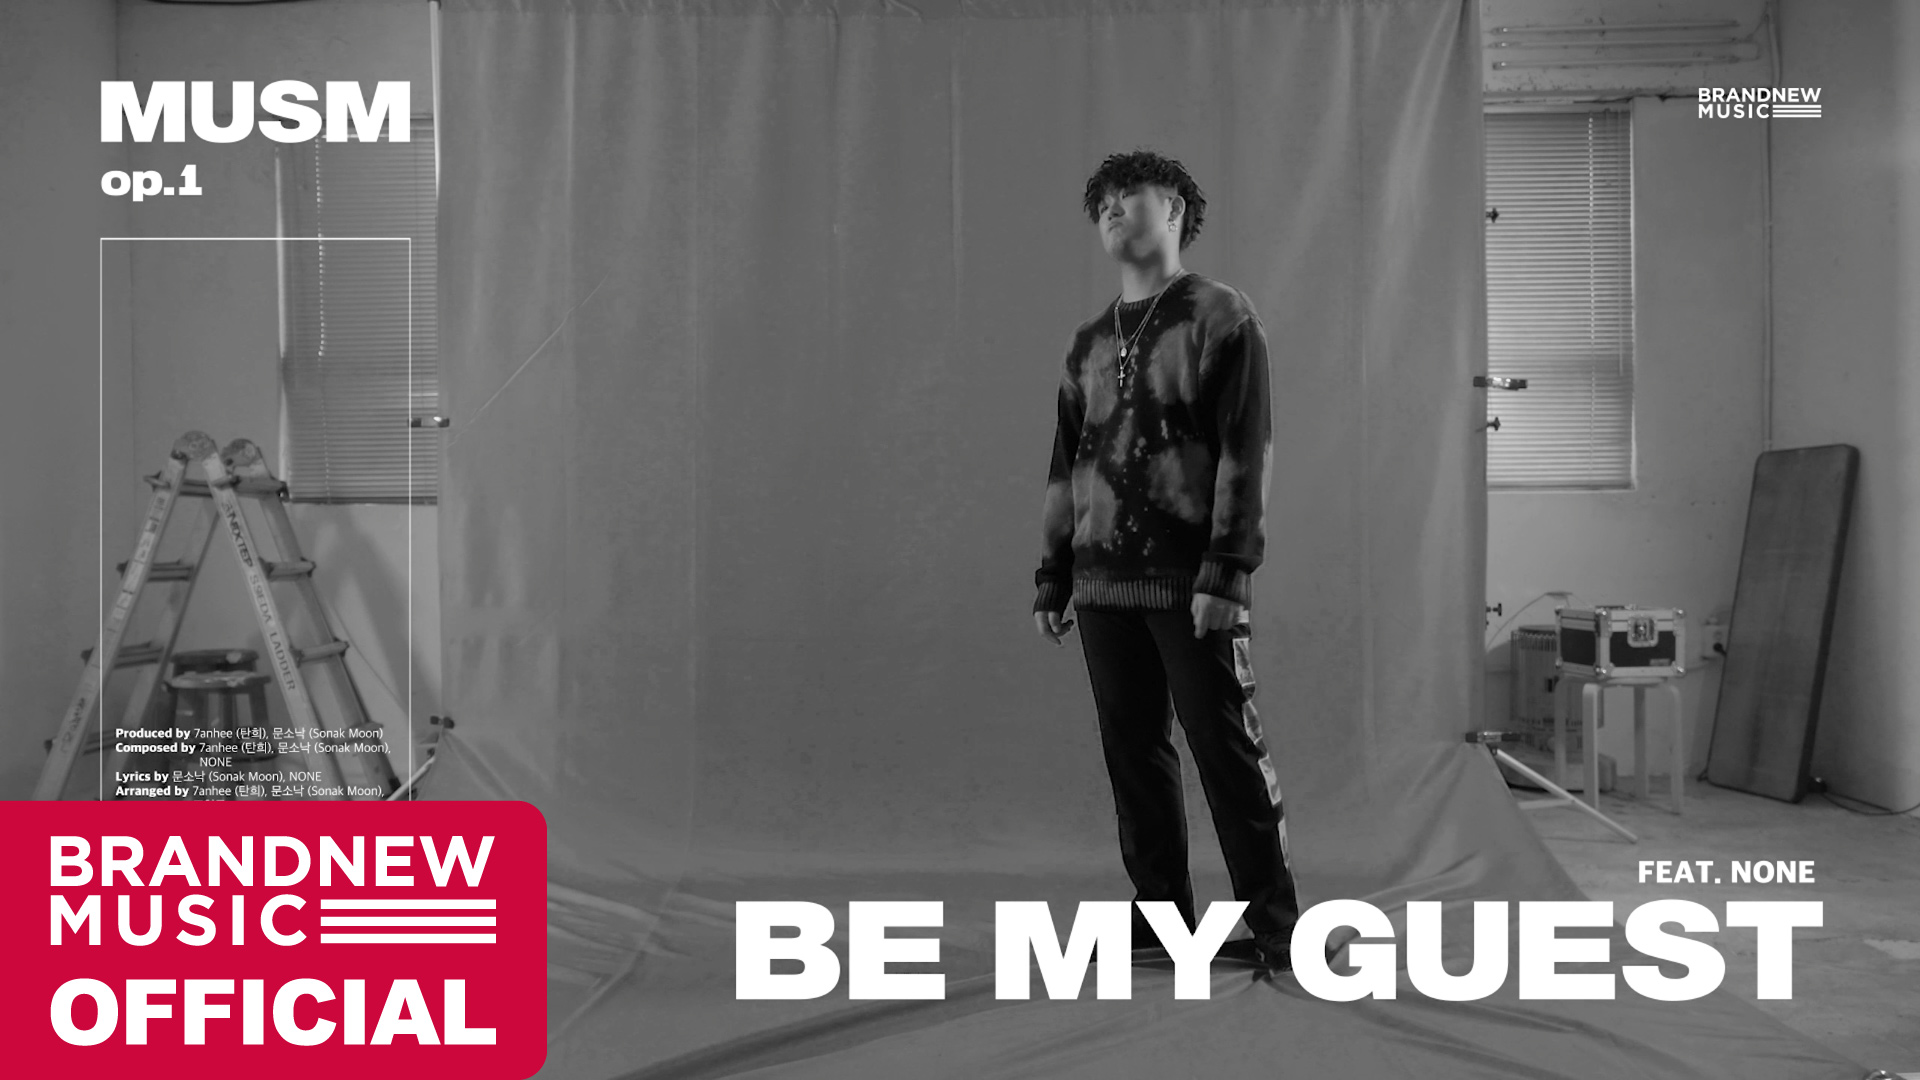 MUSM 'Be My Guest (Feat. NONE) (Prod. 7anhee (탄희), 문소낙 (Sonak Moon))' M/V